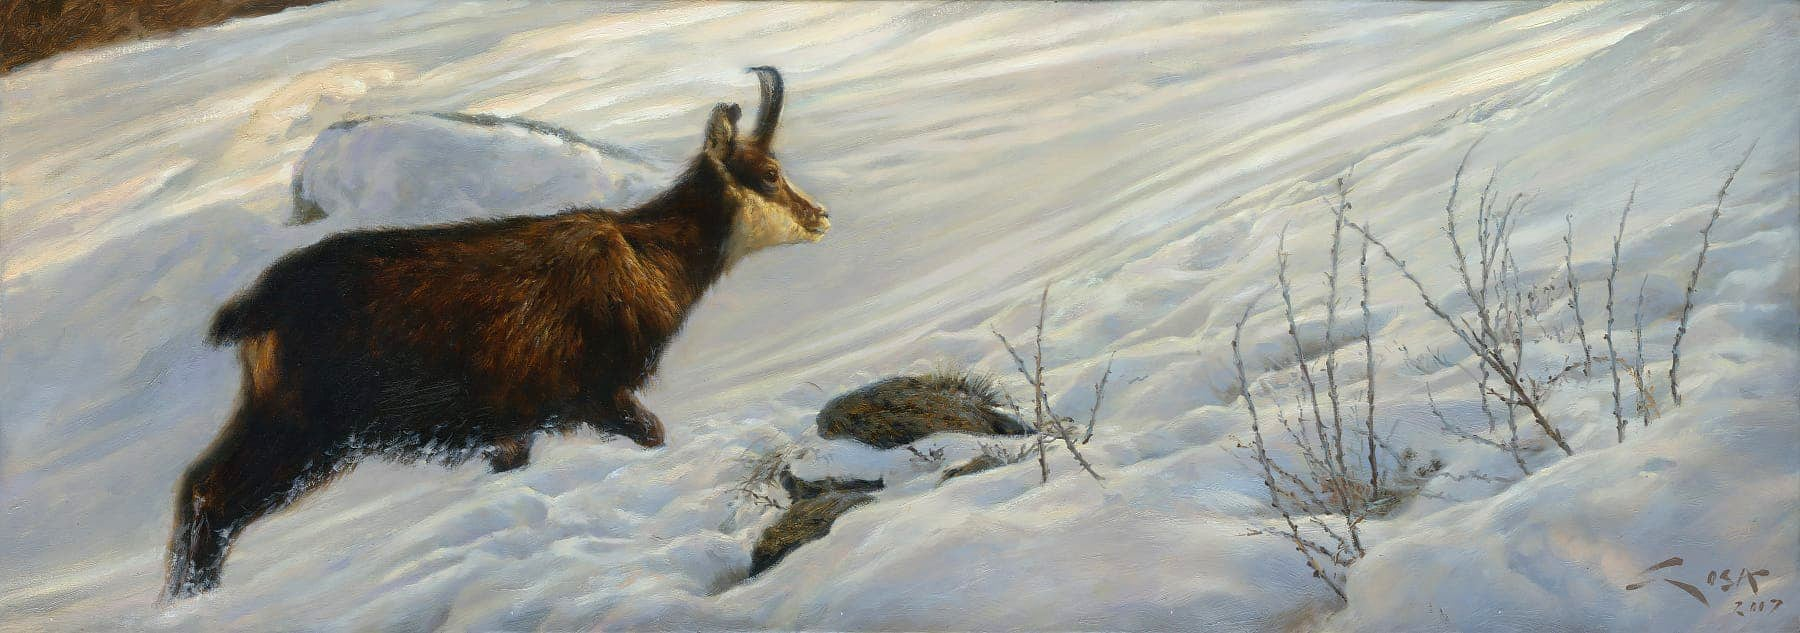 Painting of a Chamois in the snow